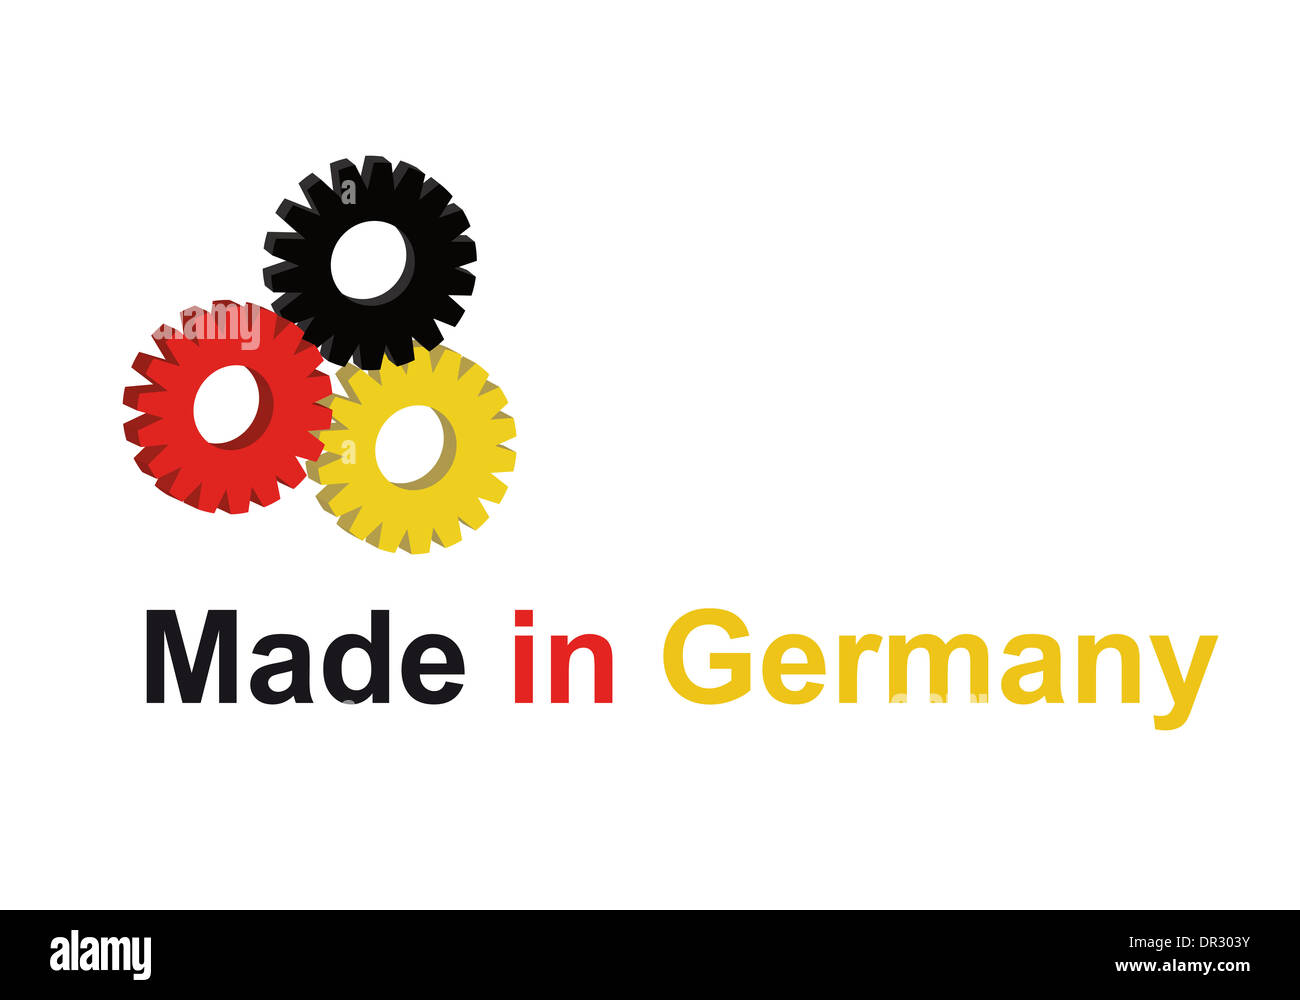 made in germany - Stock Image